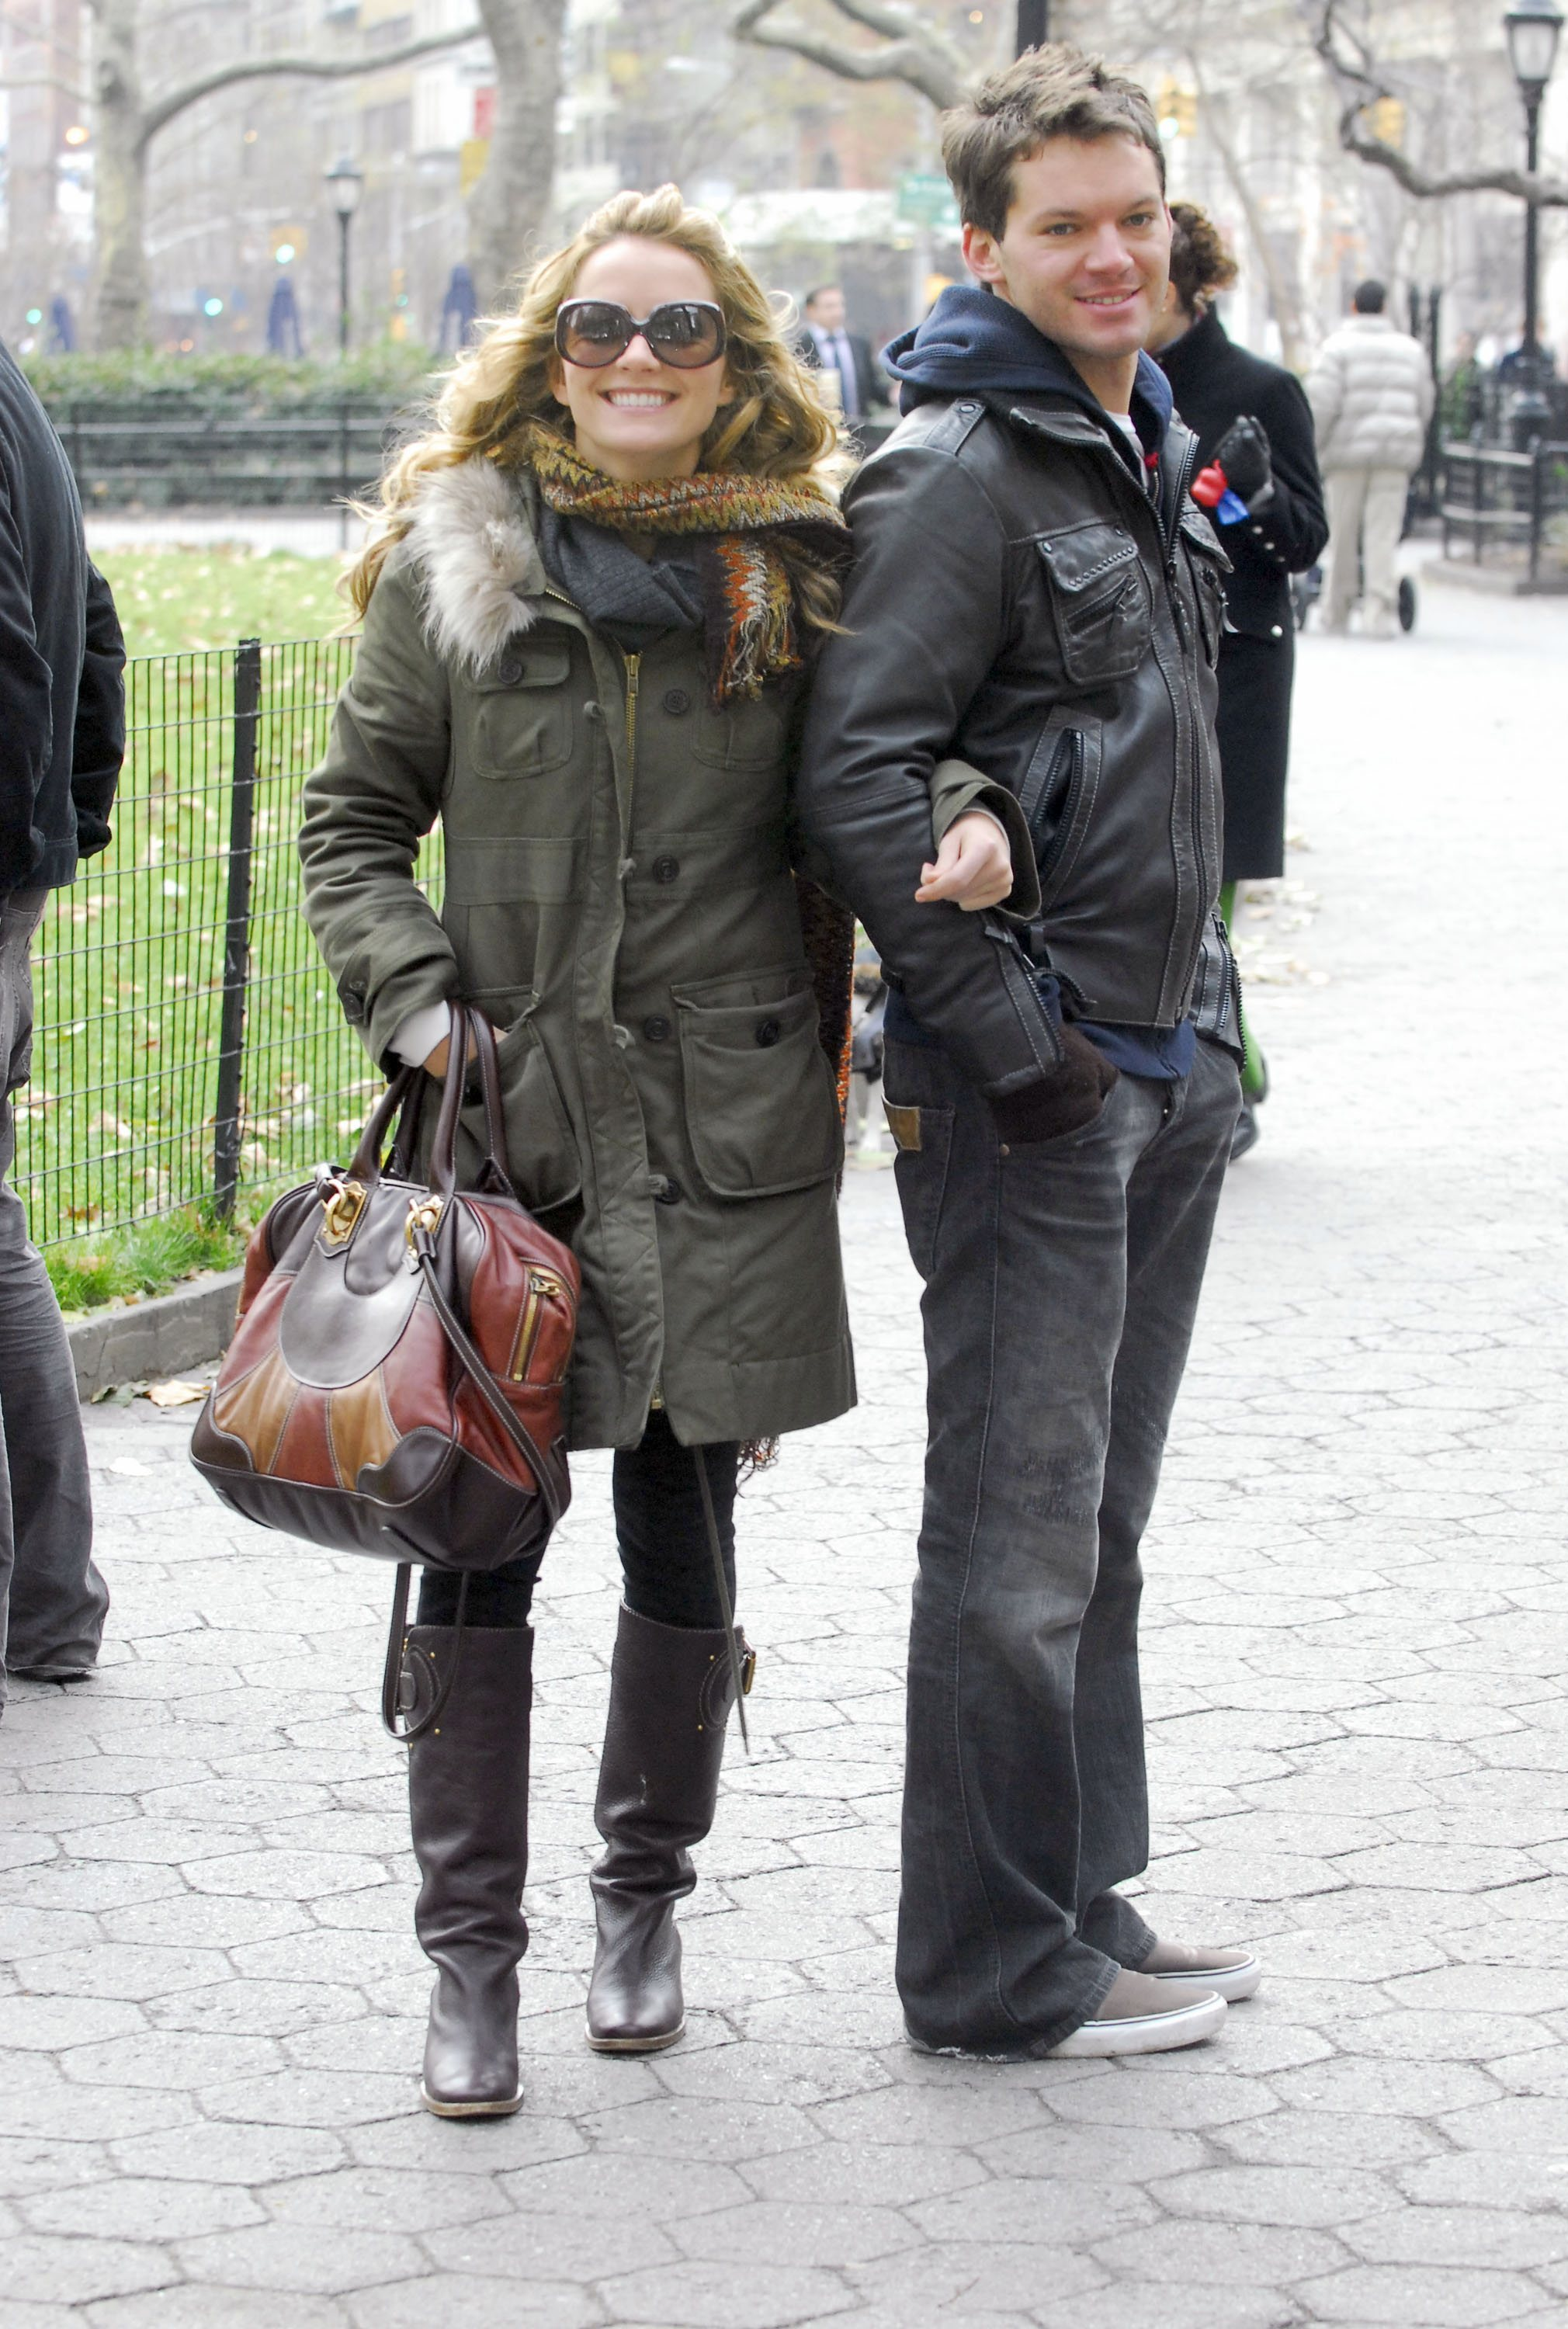 Becki Newton and her brother Matt Newton on the set of 'Ugly Betty'  Featuring: Becki Newton and her brother Matt Newton Where: New York City, United States When: 04 Dec 2008 Credit: Patricia Schlein/WENN